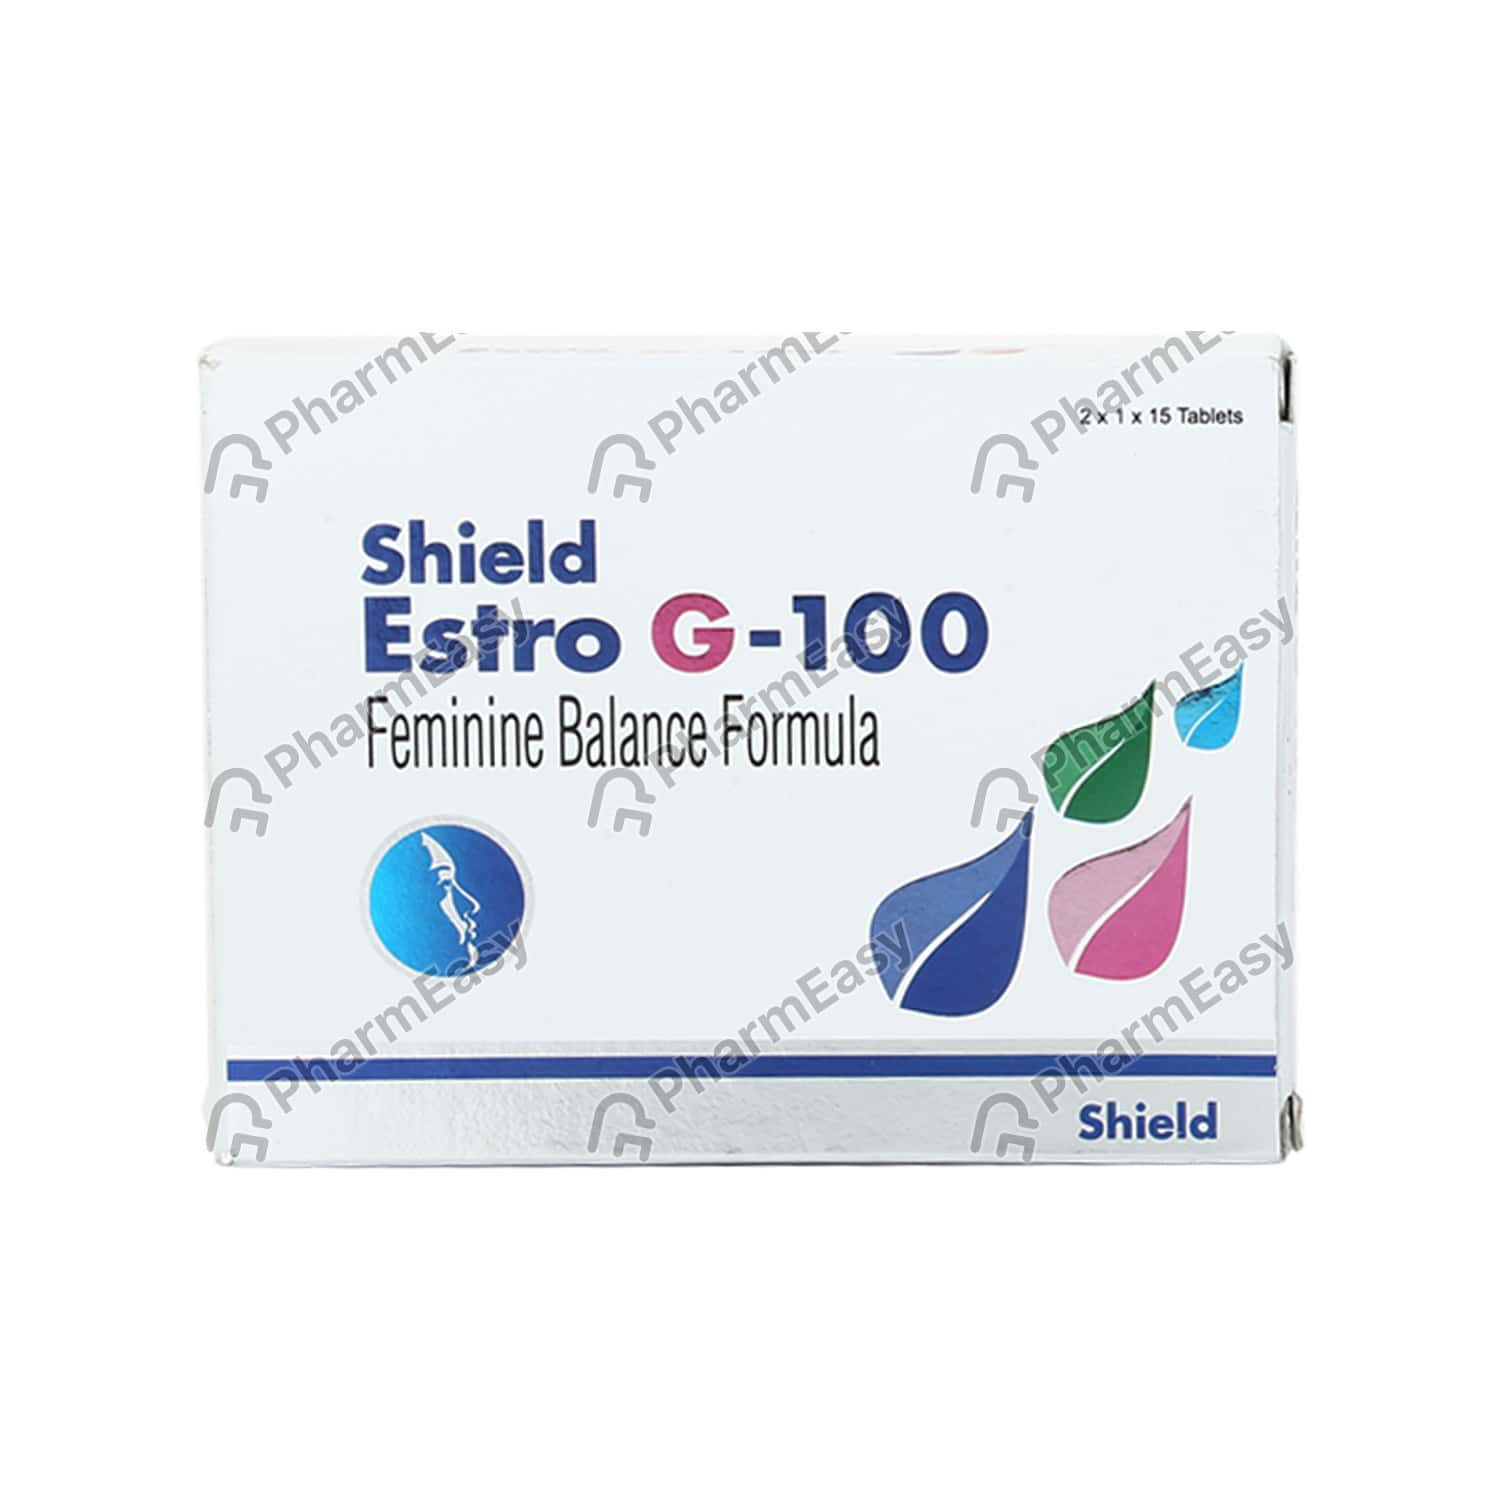 Shield Estro G 100 Tablet 15's